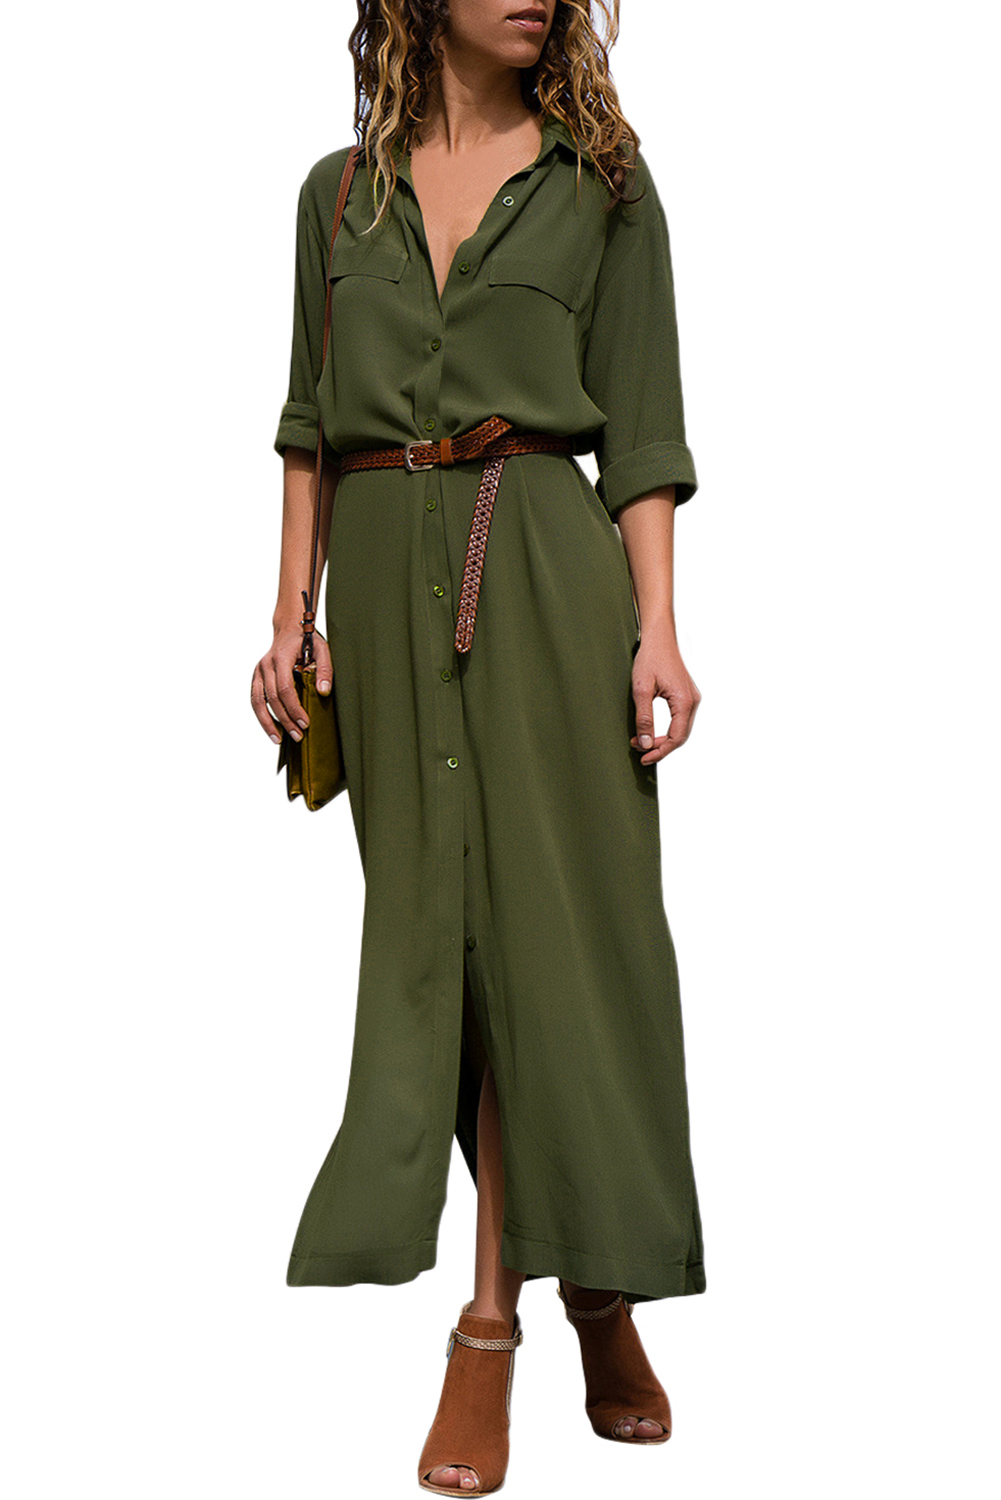 Hot Army Green Slit Maxi Shirt Dress with Sash Online